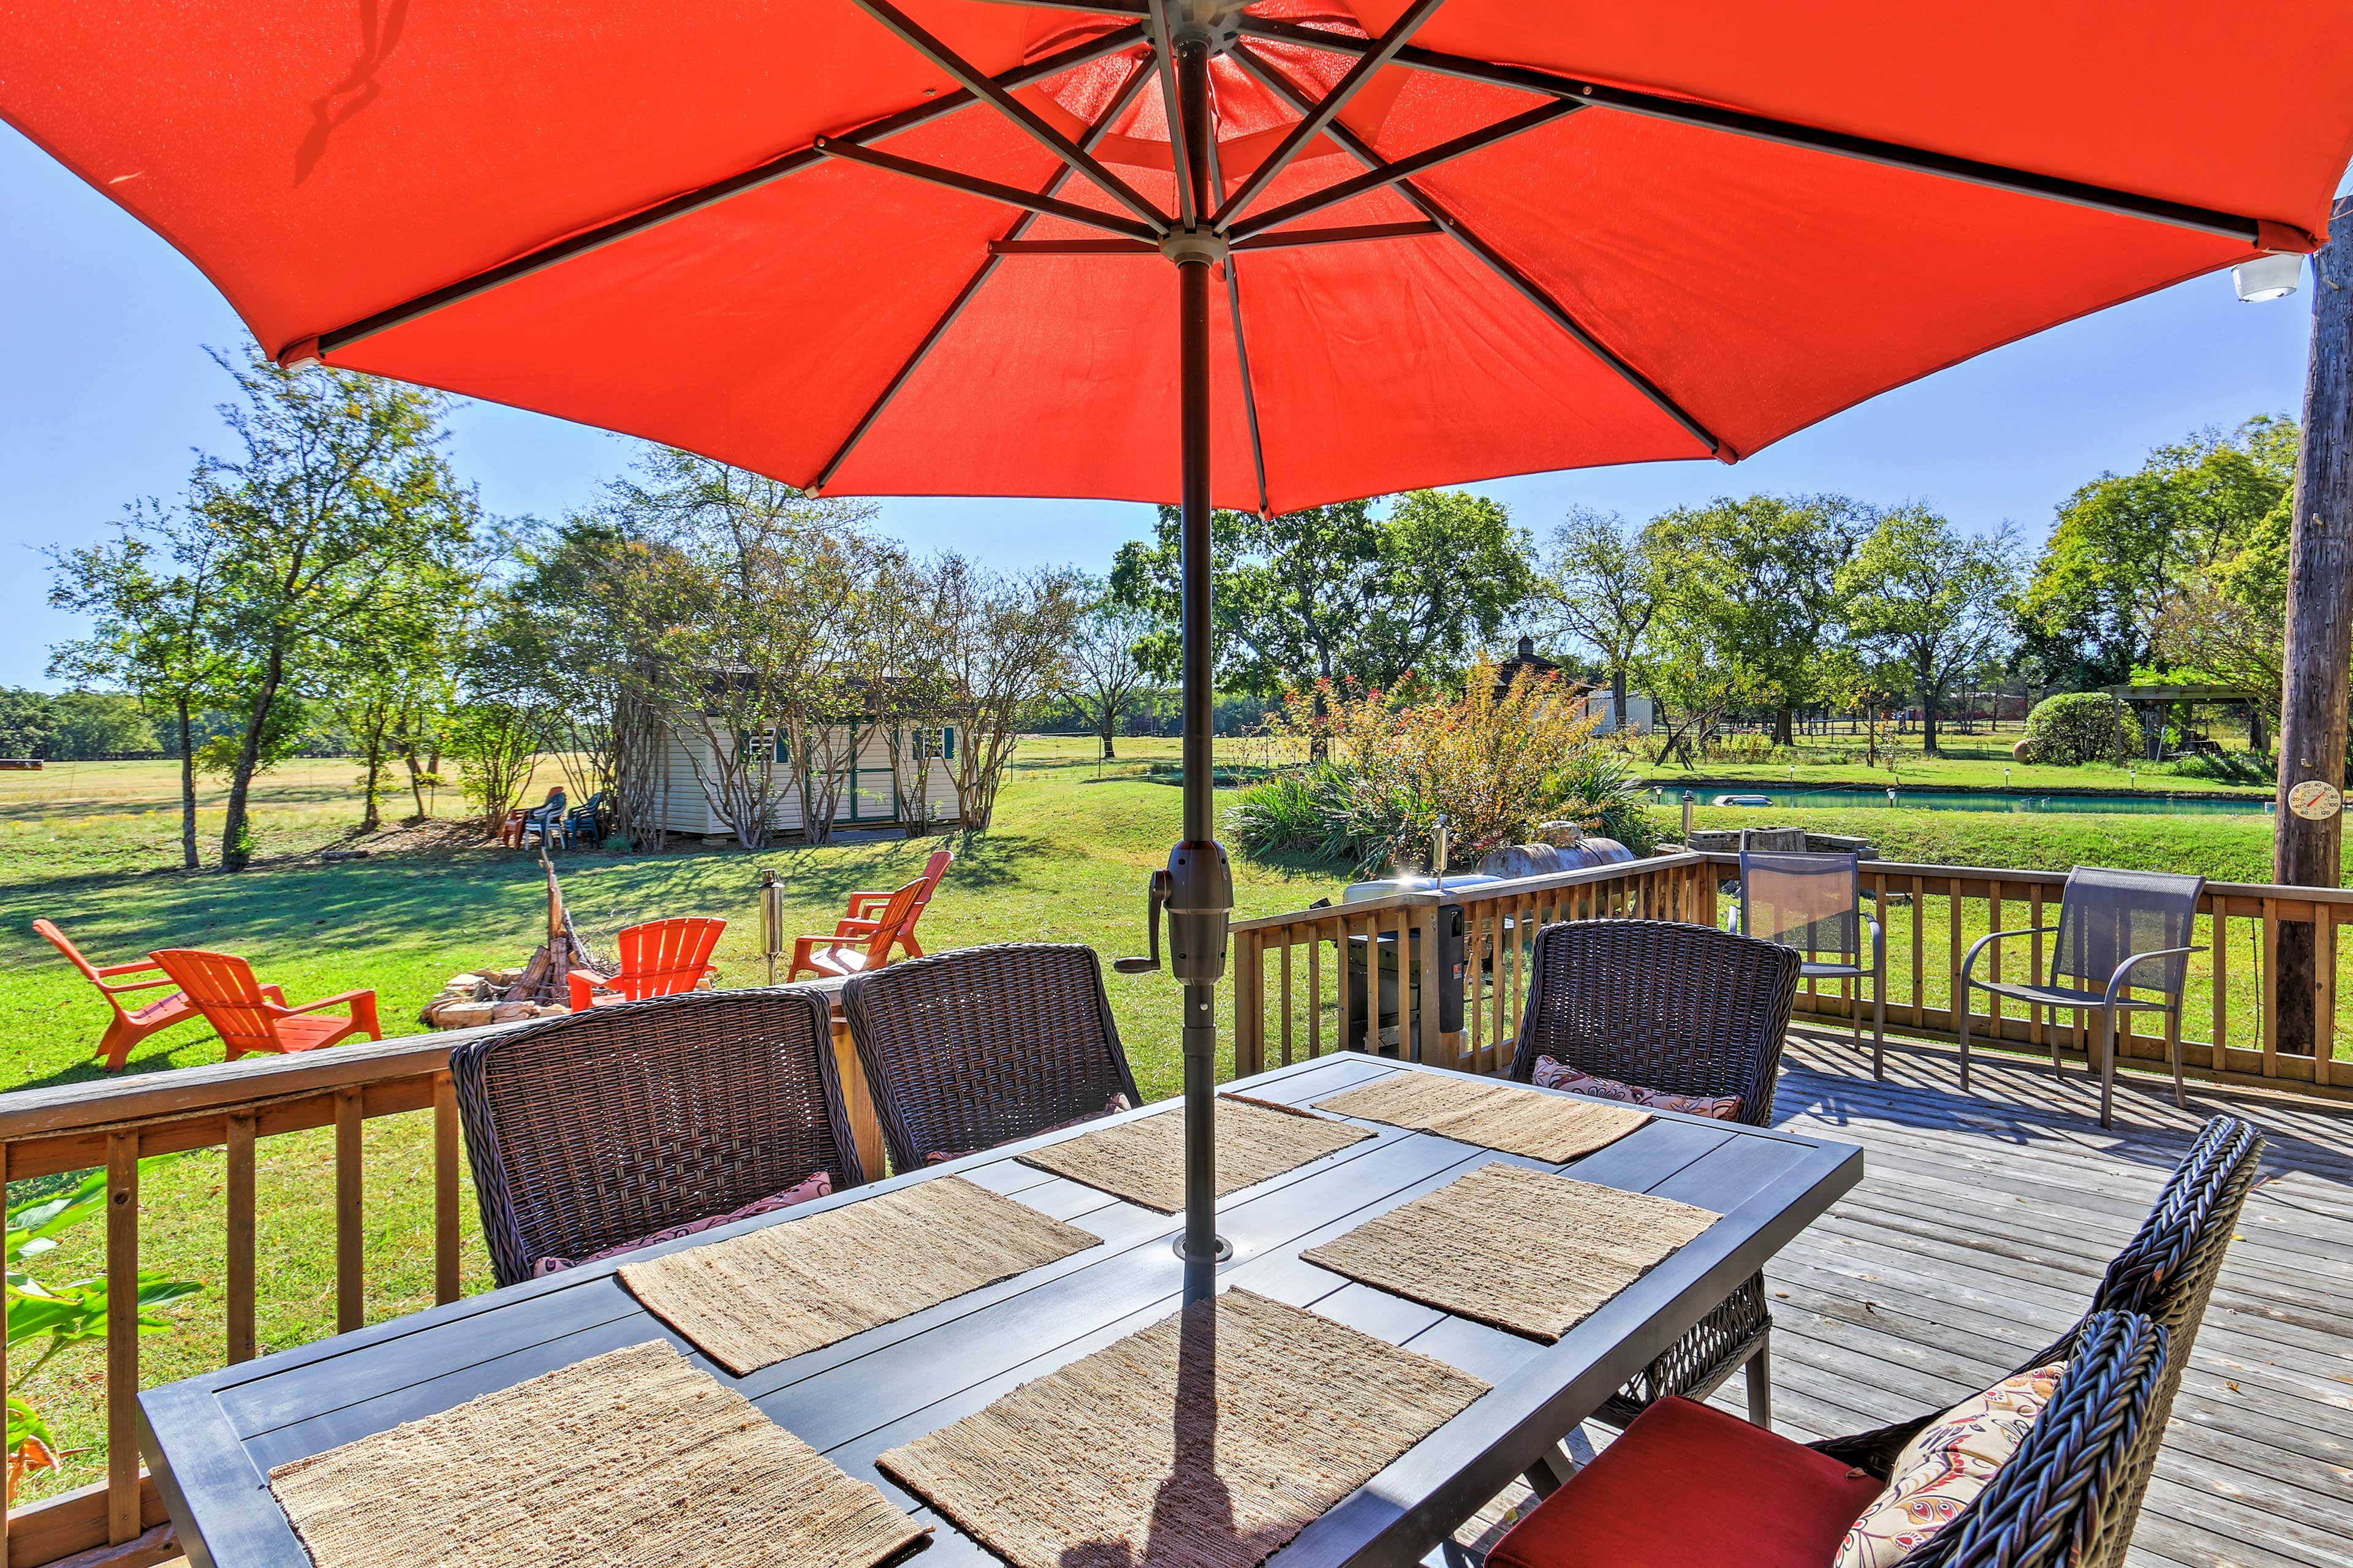 The deck has unobstructed views of the beautiful scenery.